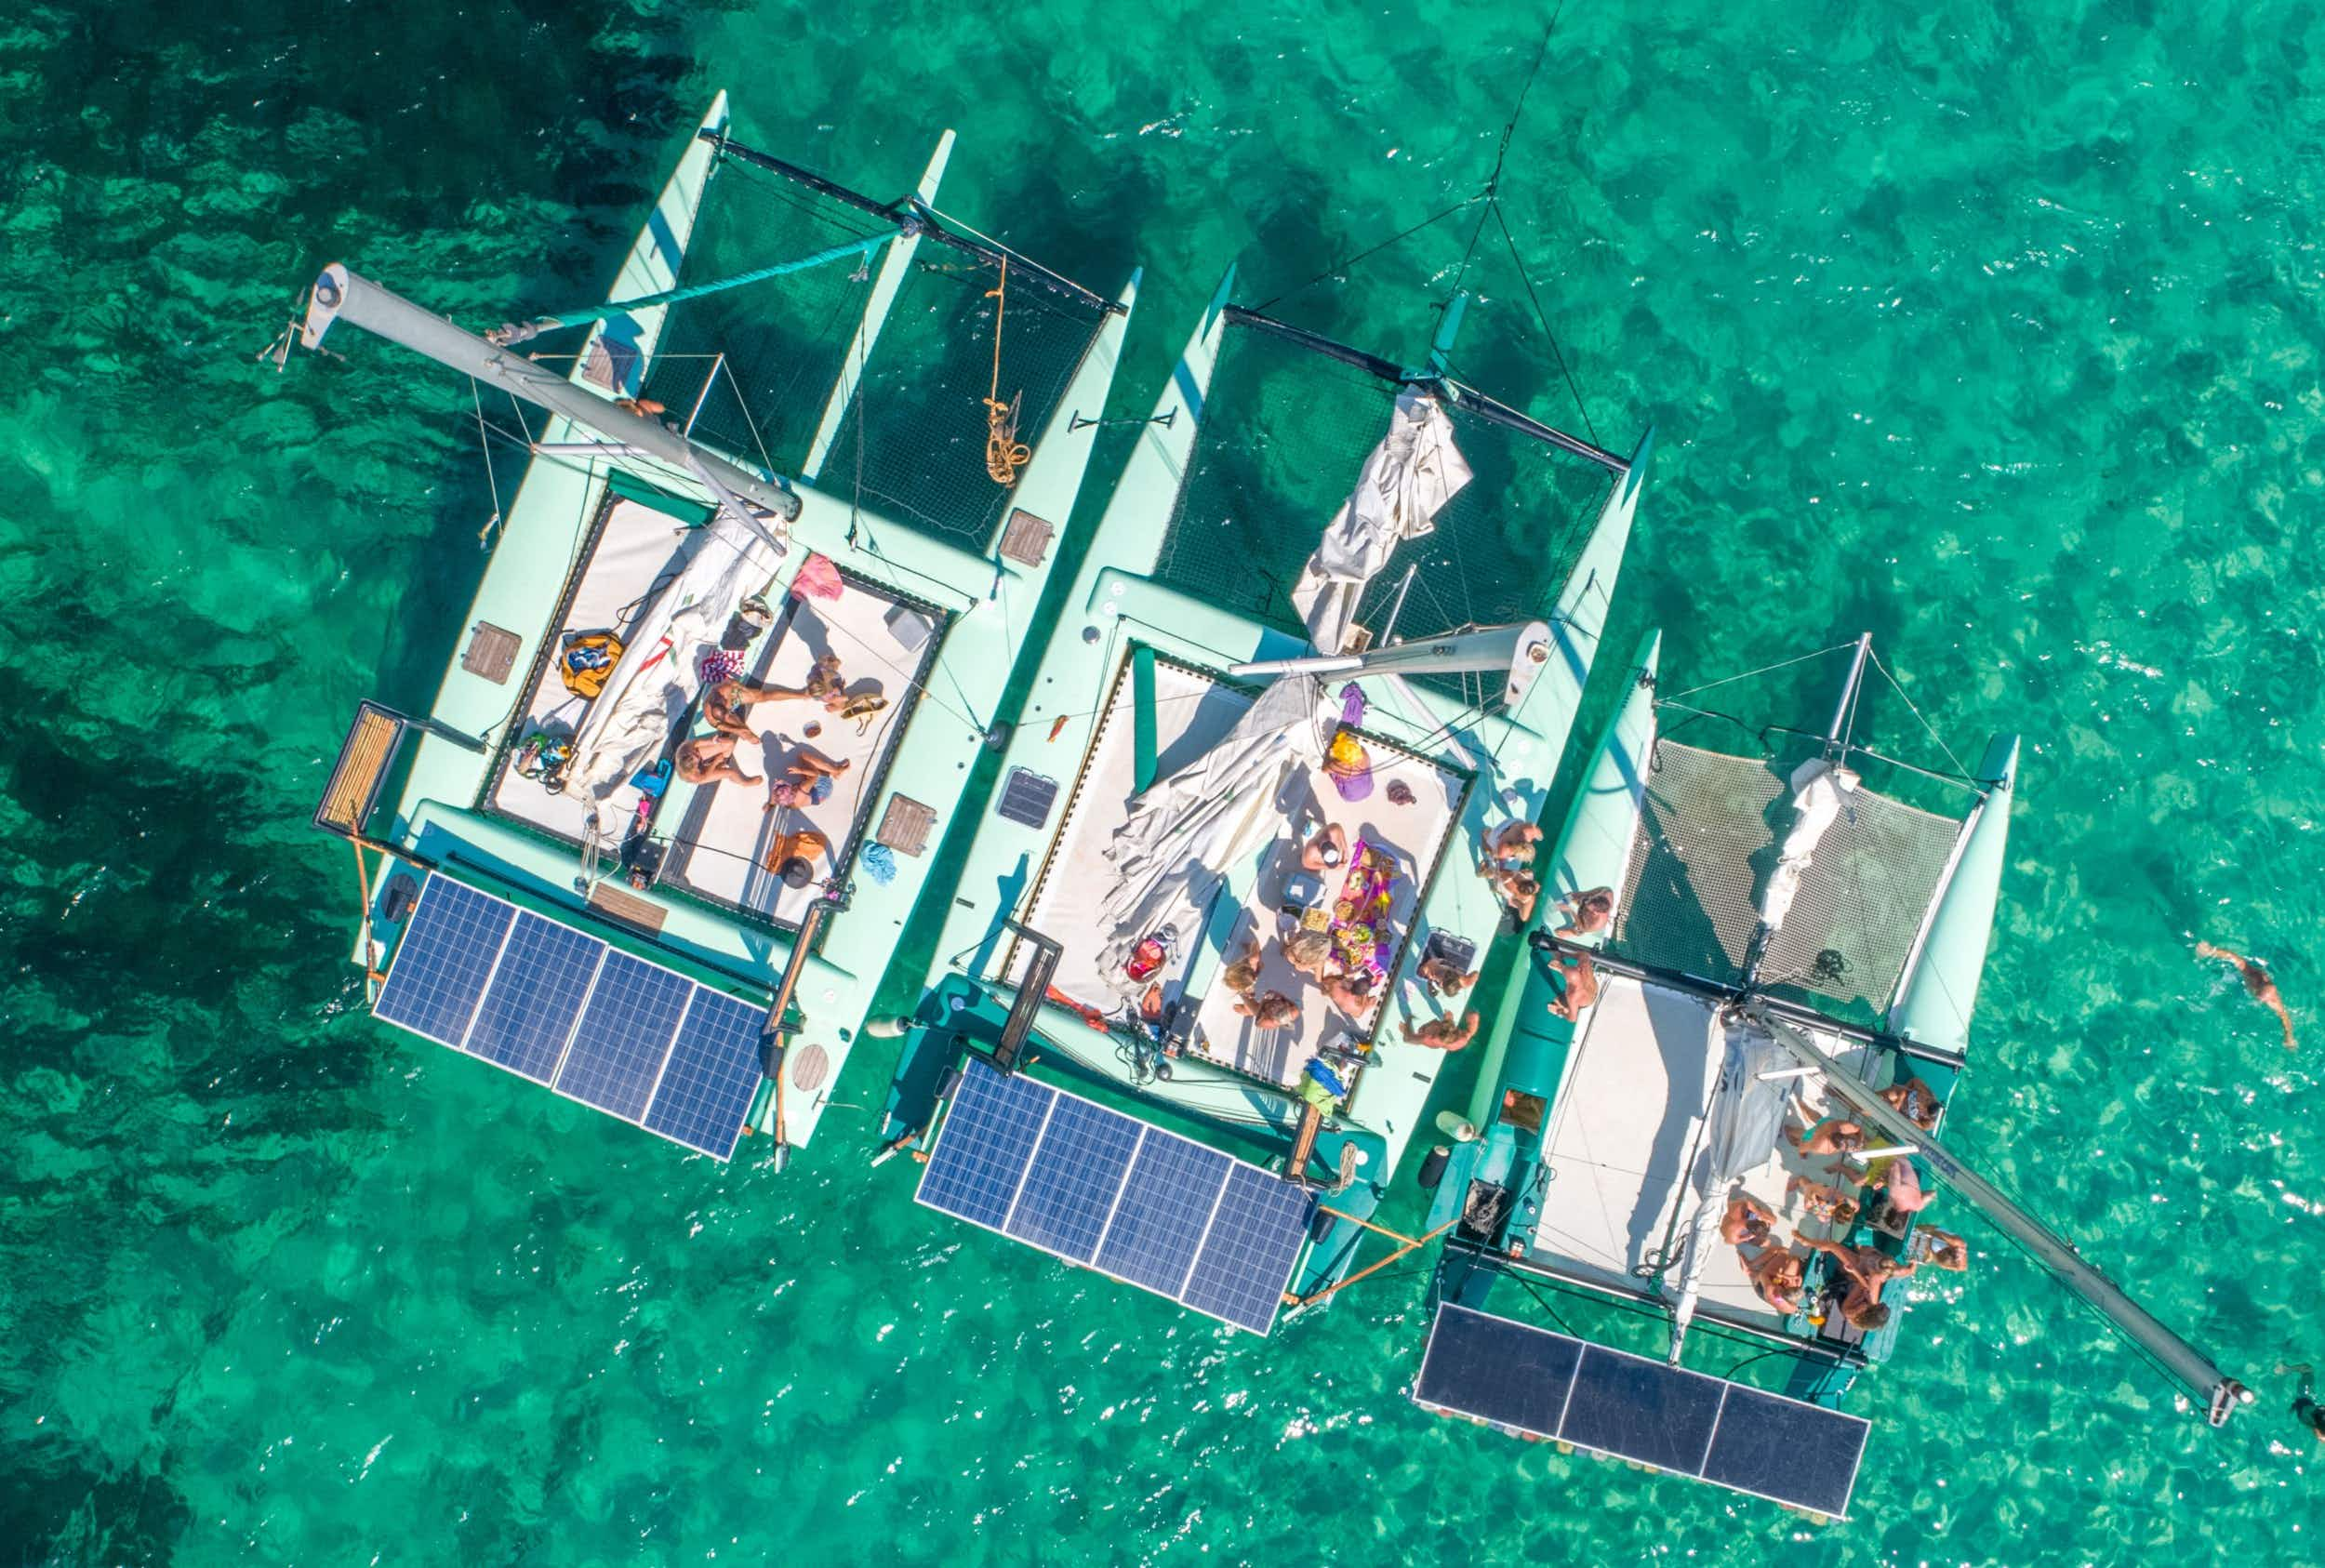 Solar-powered catamaran experience, La Bella Verde, has added two new green boats to its existing eco-friendly fleet Ibiza by Air